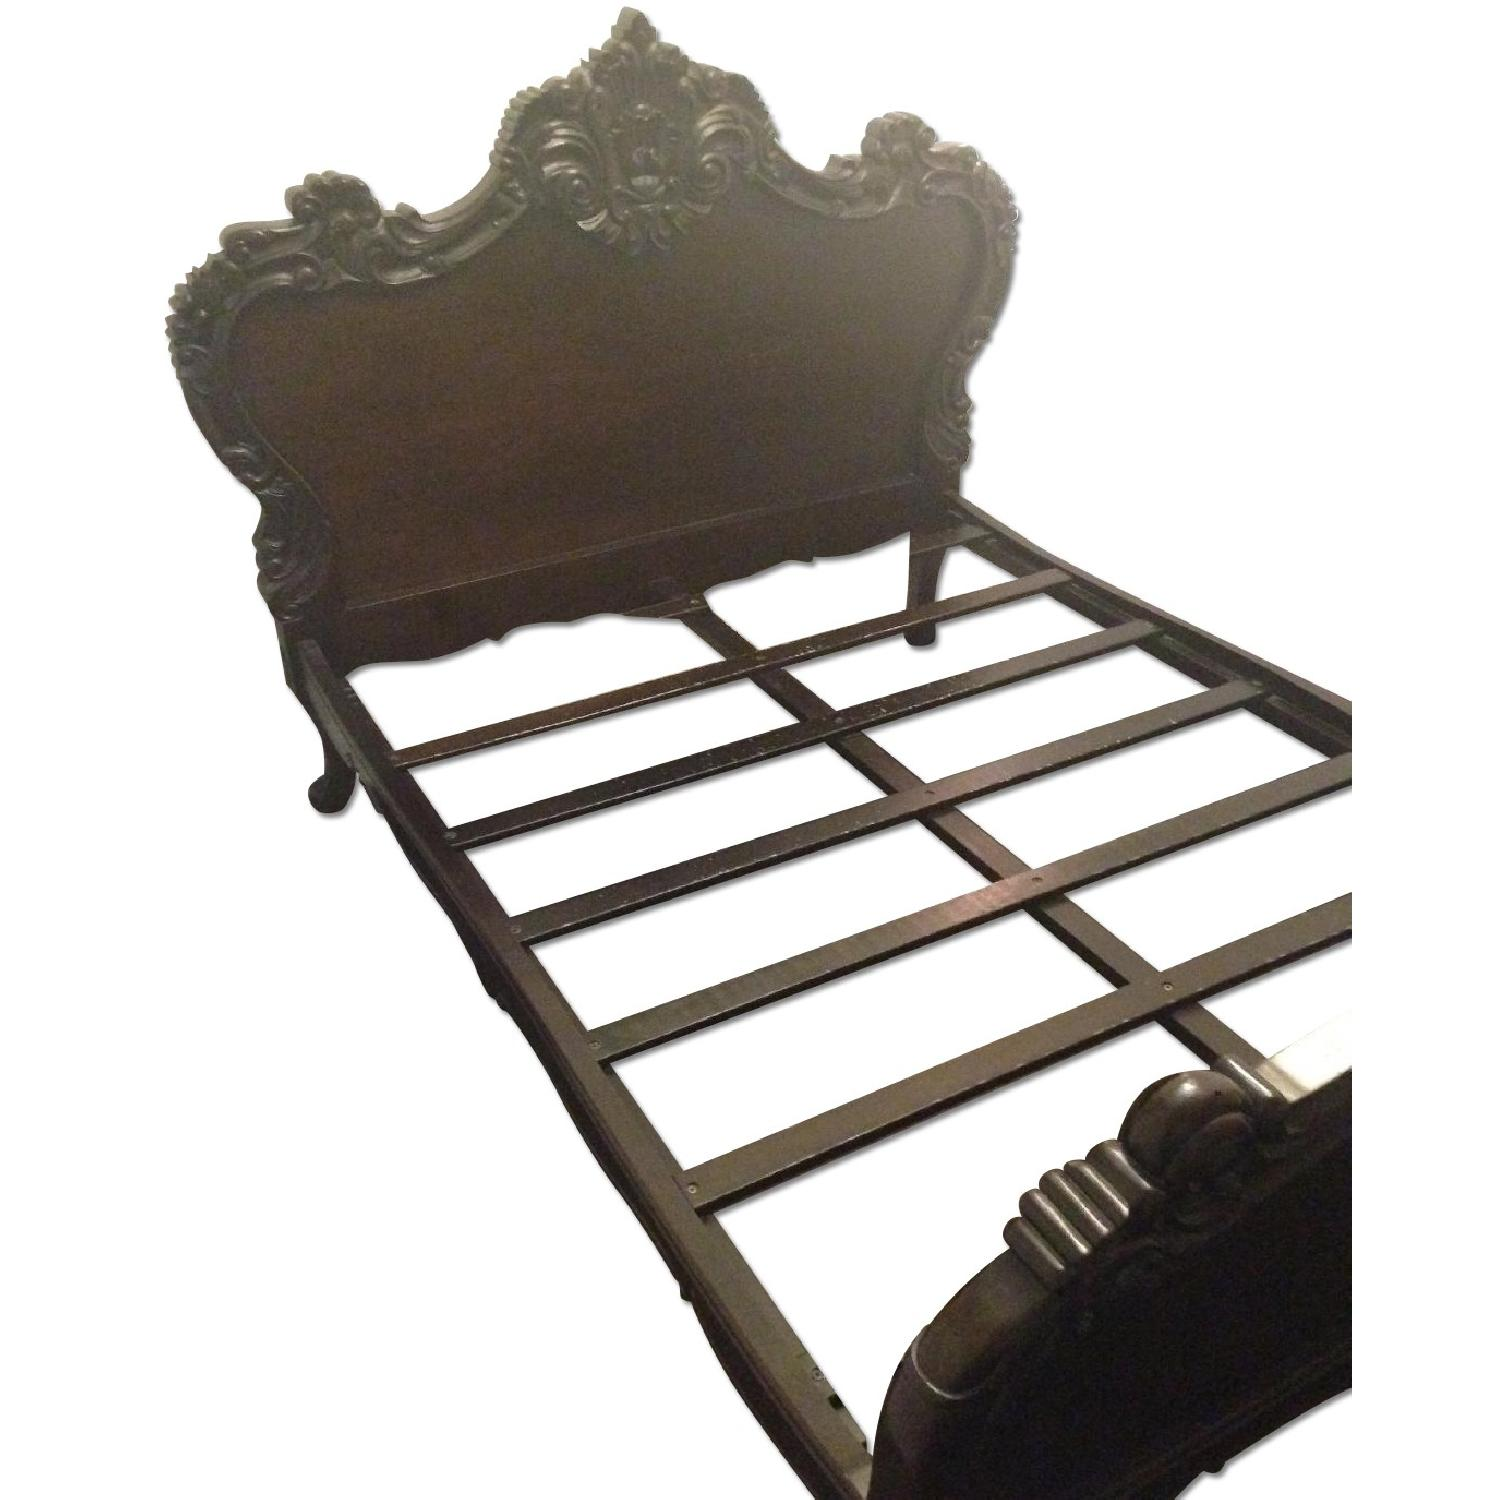 Brocade Home Wooden Queen Size Bed Frame w/ Carved Headboard/Footboard - image-0